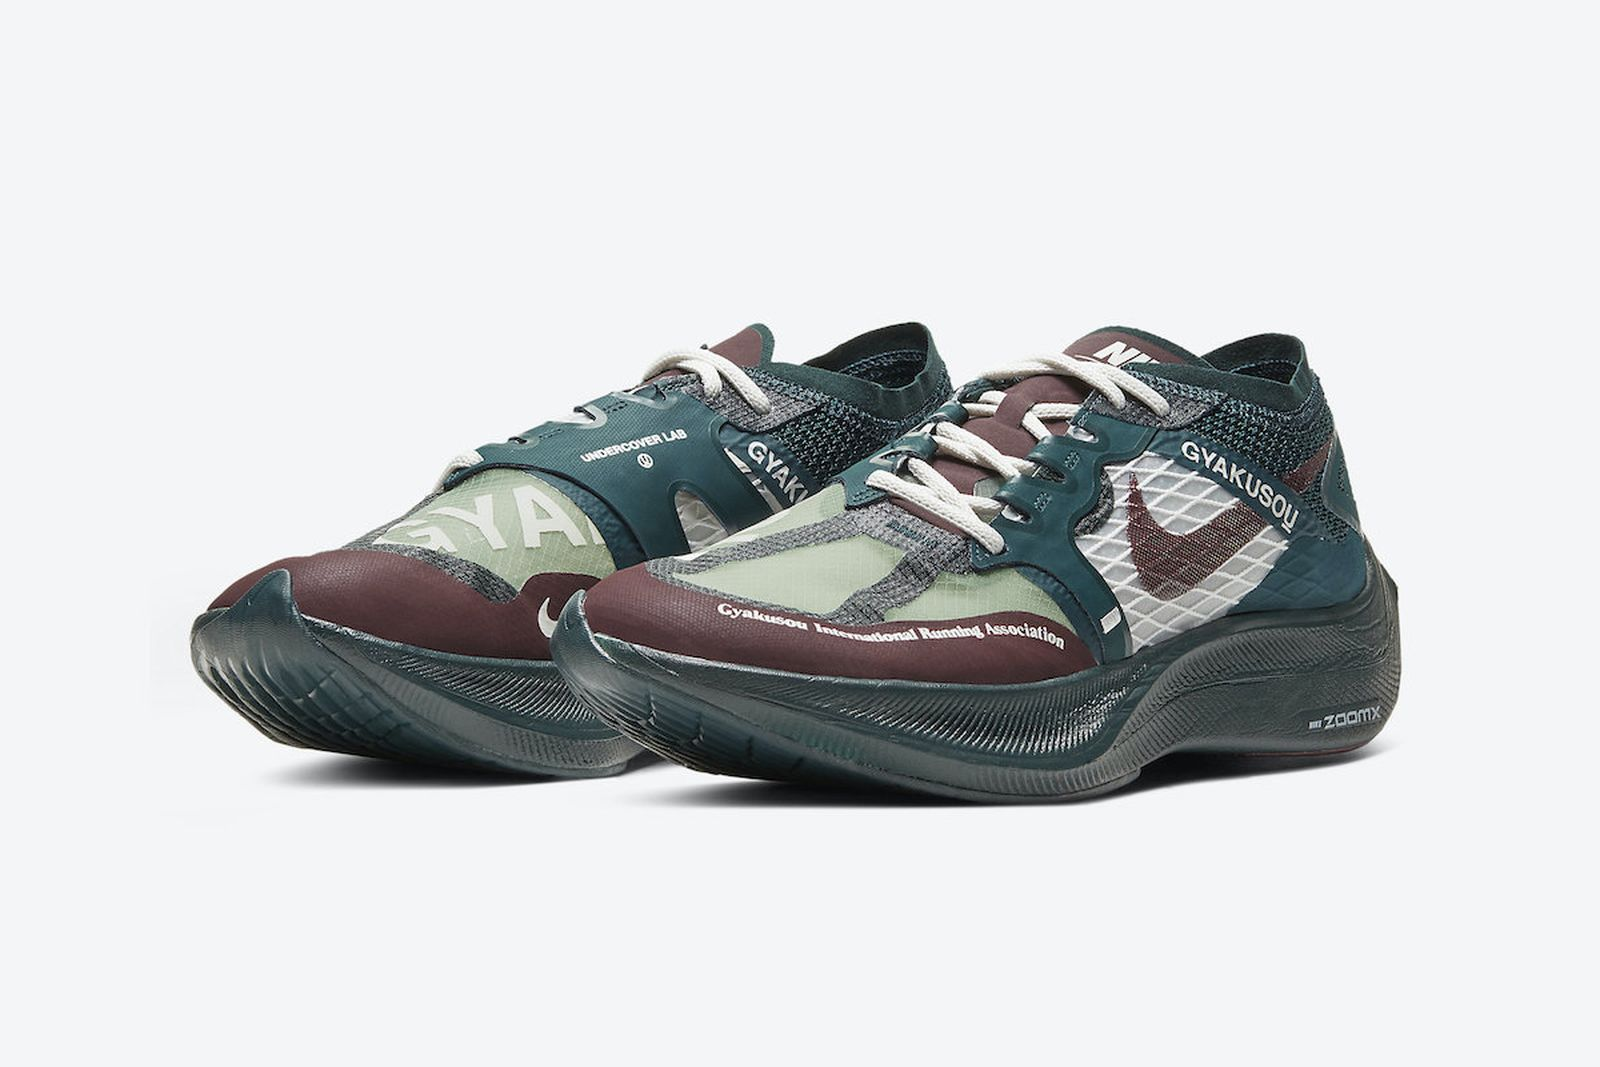 undercover-nike-zoomx-vaporfly-next-2-release-date-price-07